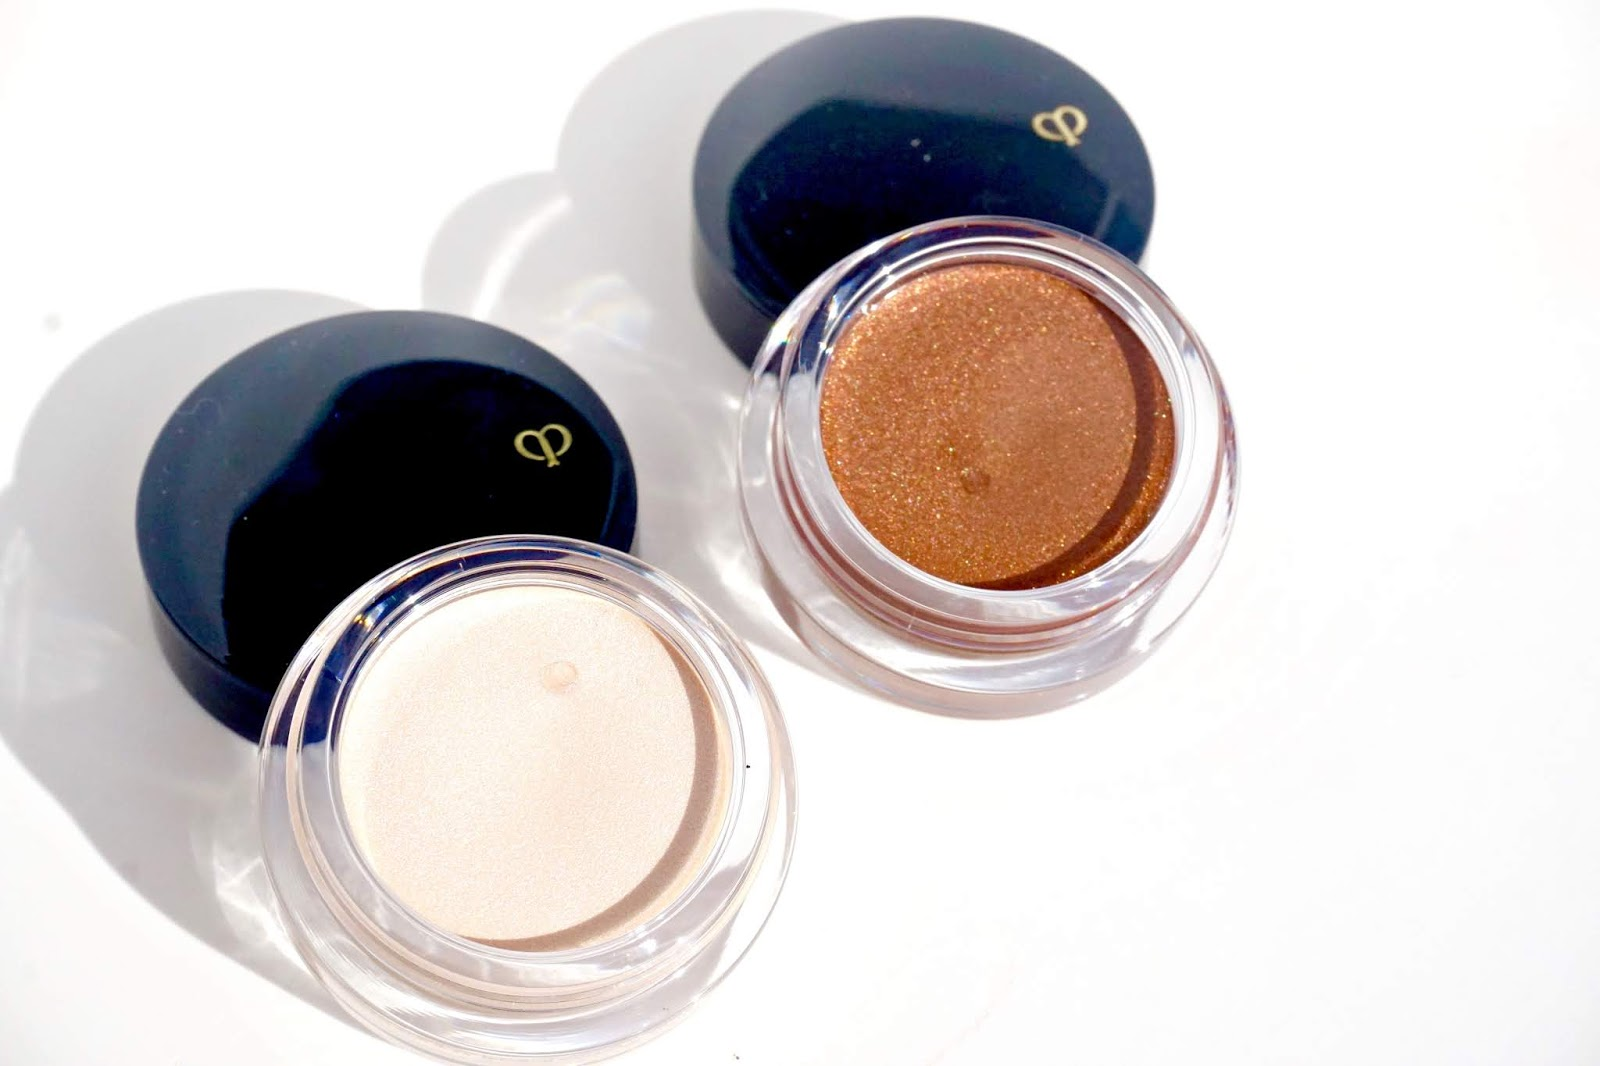 cle de peau cream eye color solo 308 309 swatches